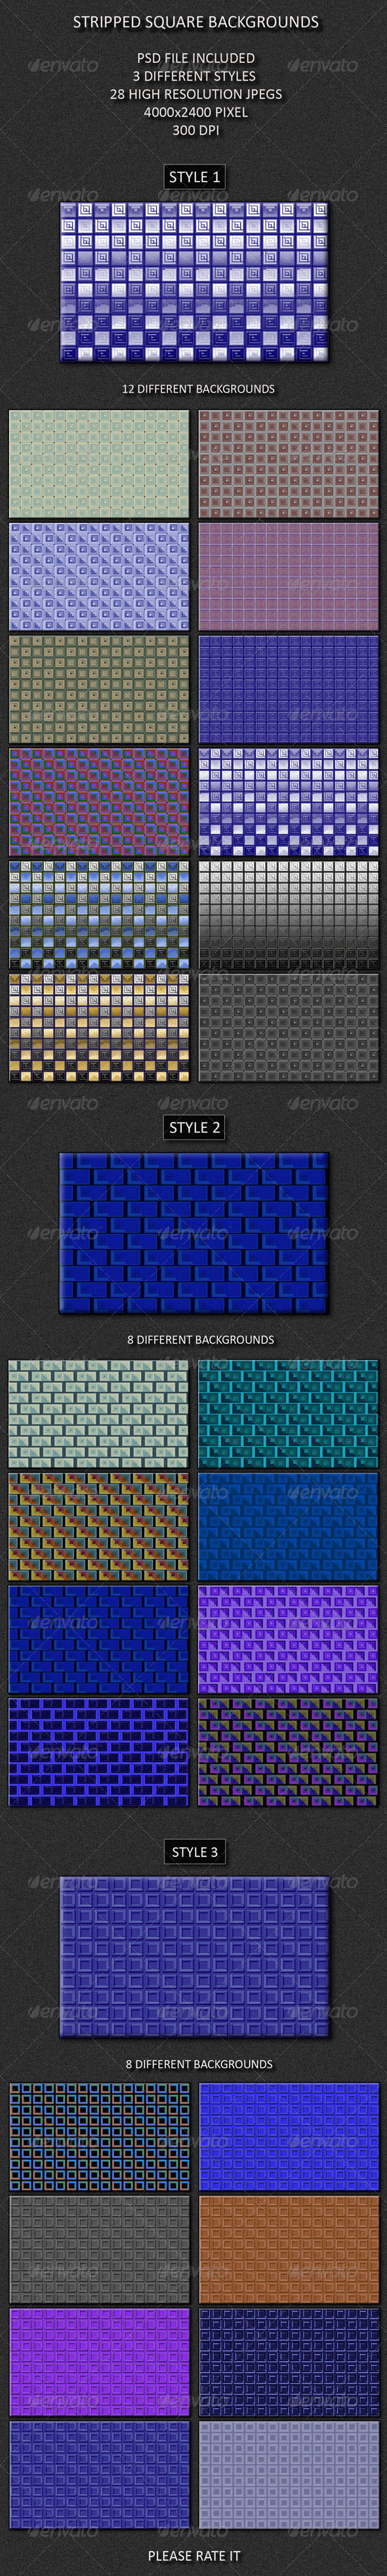 Striped Square Backgrounds - Patterns Backgrounds